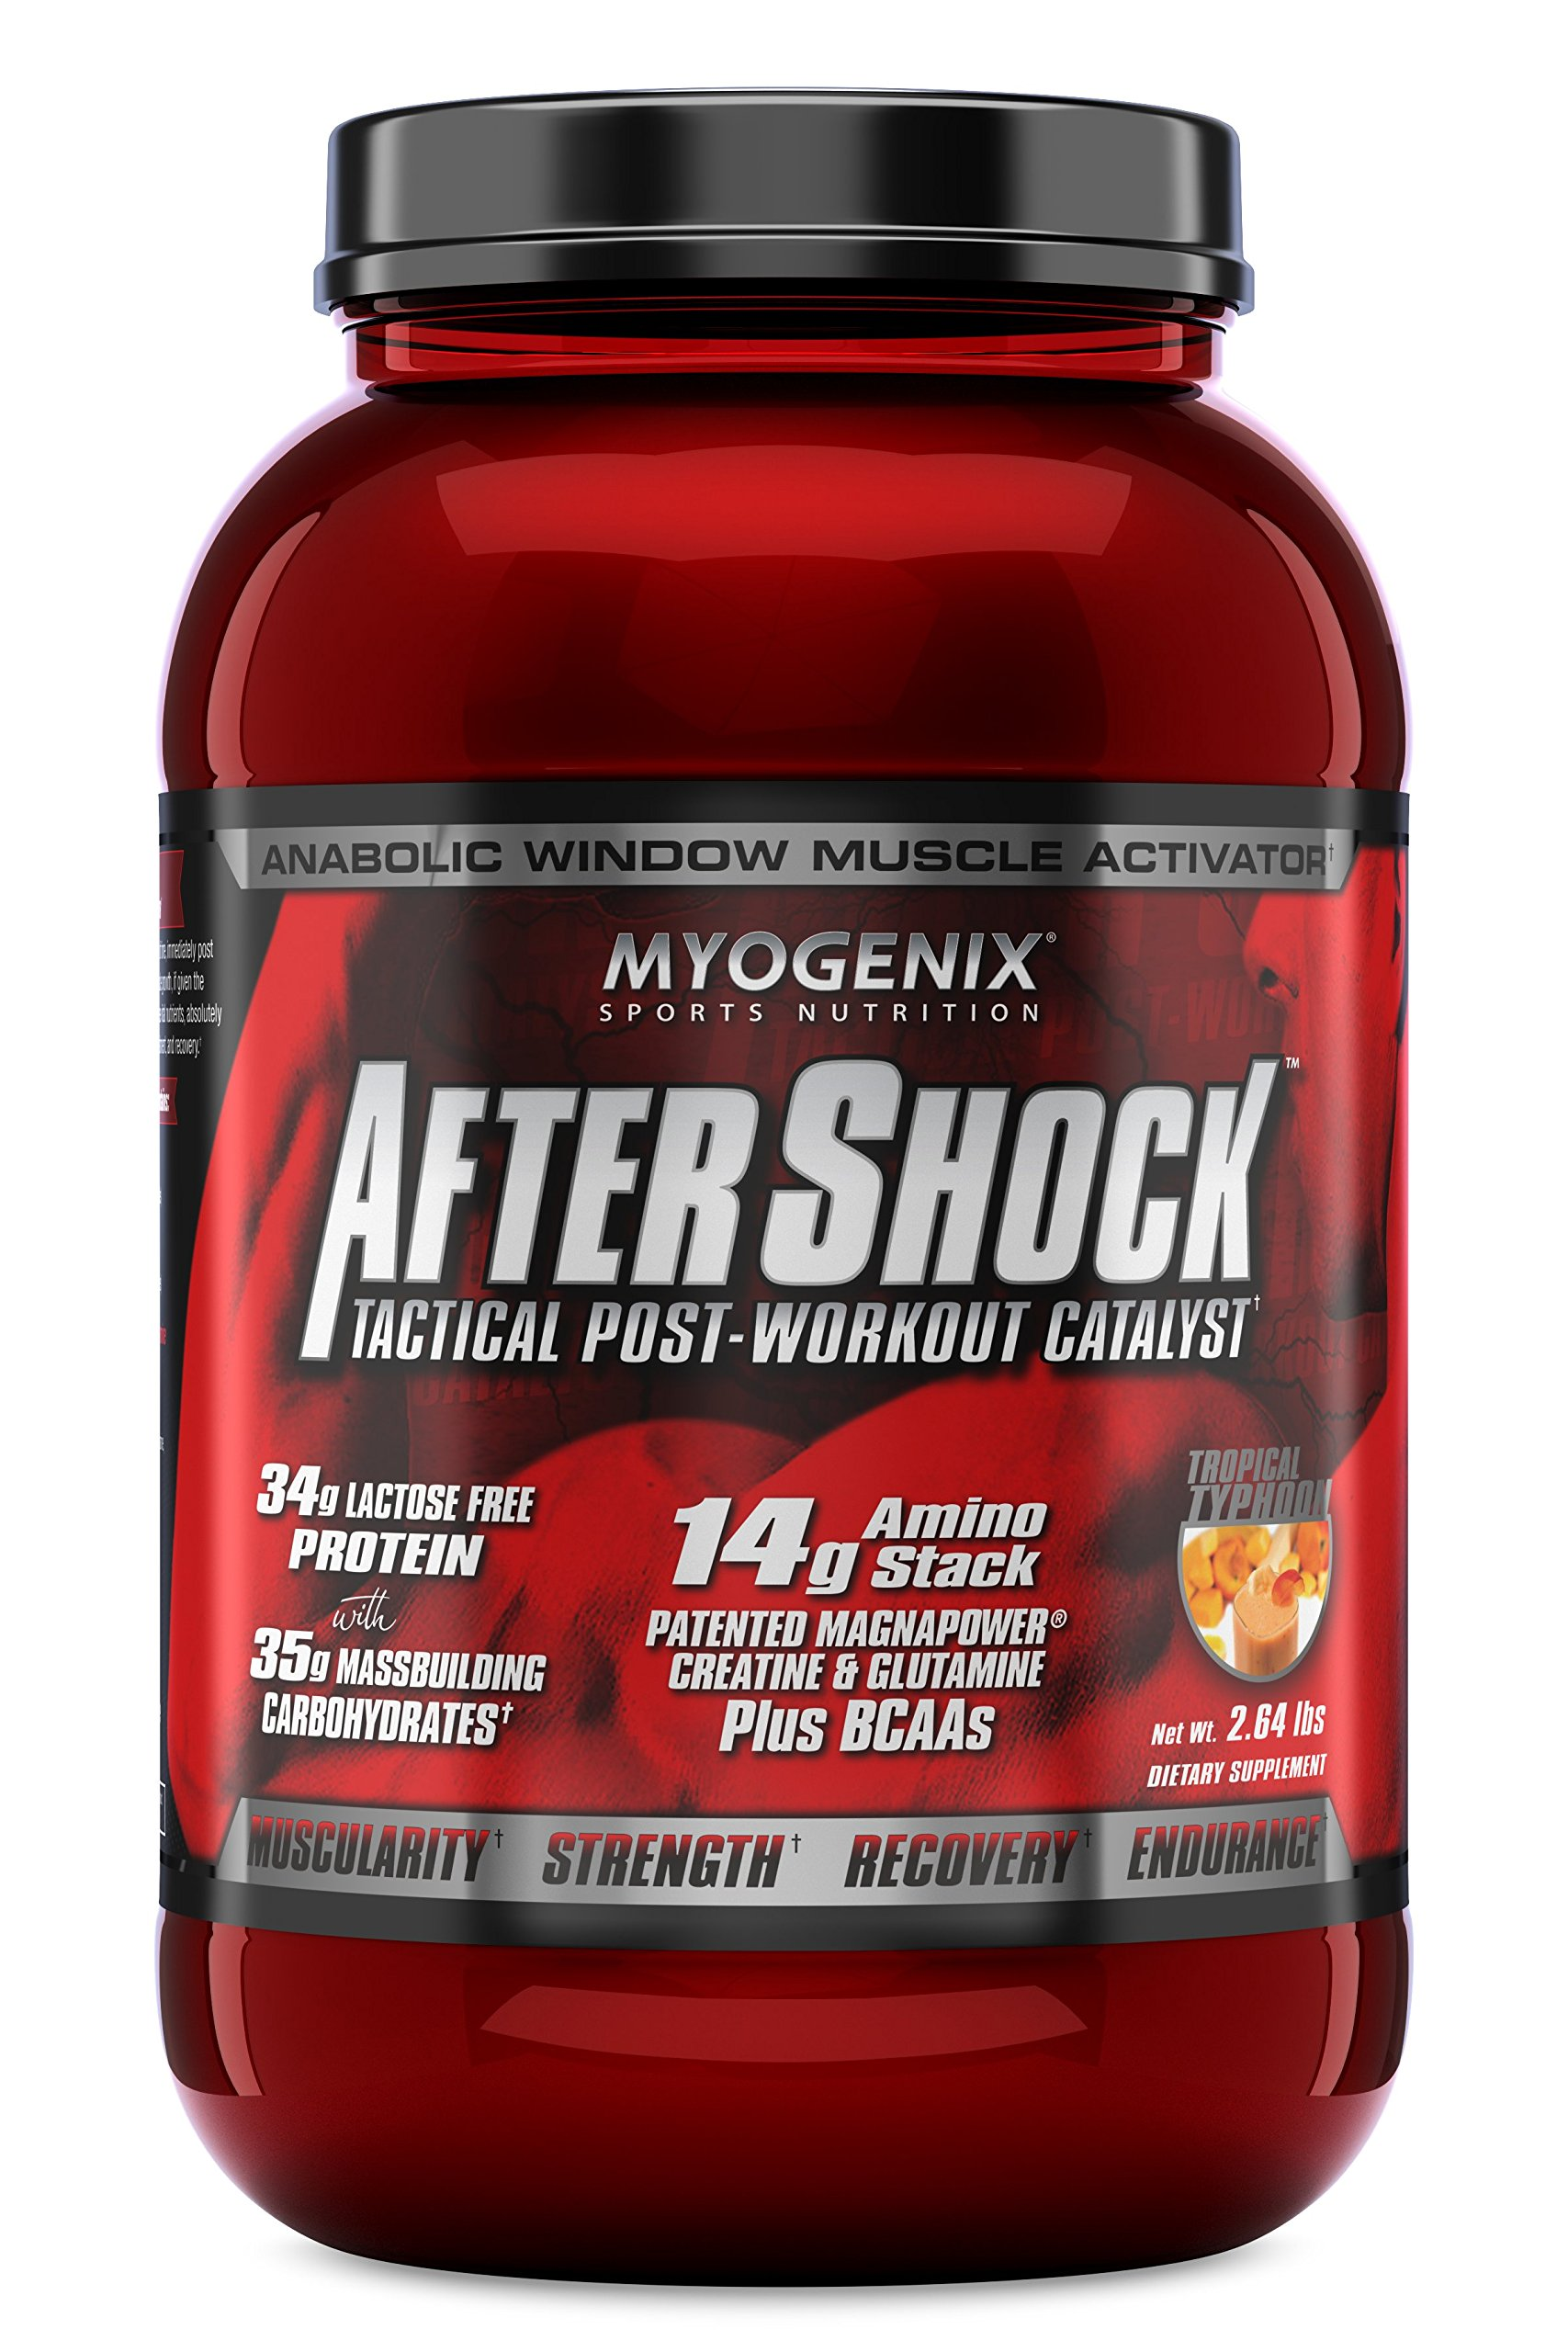 Myogenix Aftershock Tropical Typhoon 2.64Lb